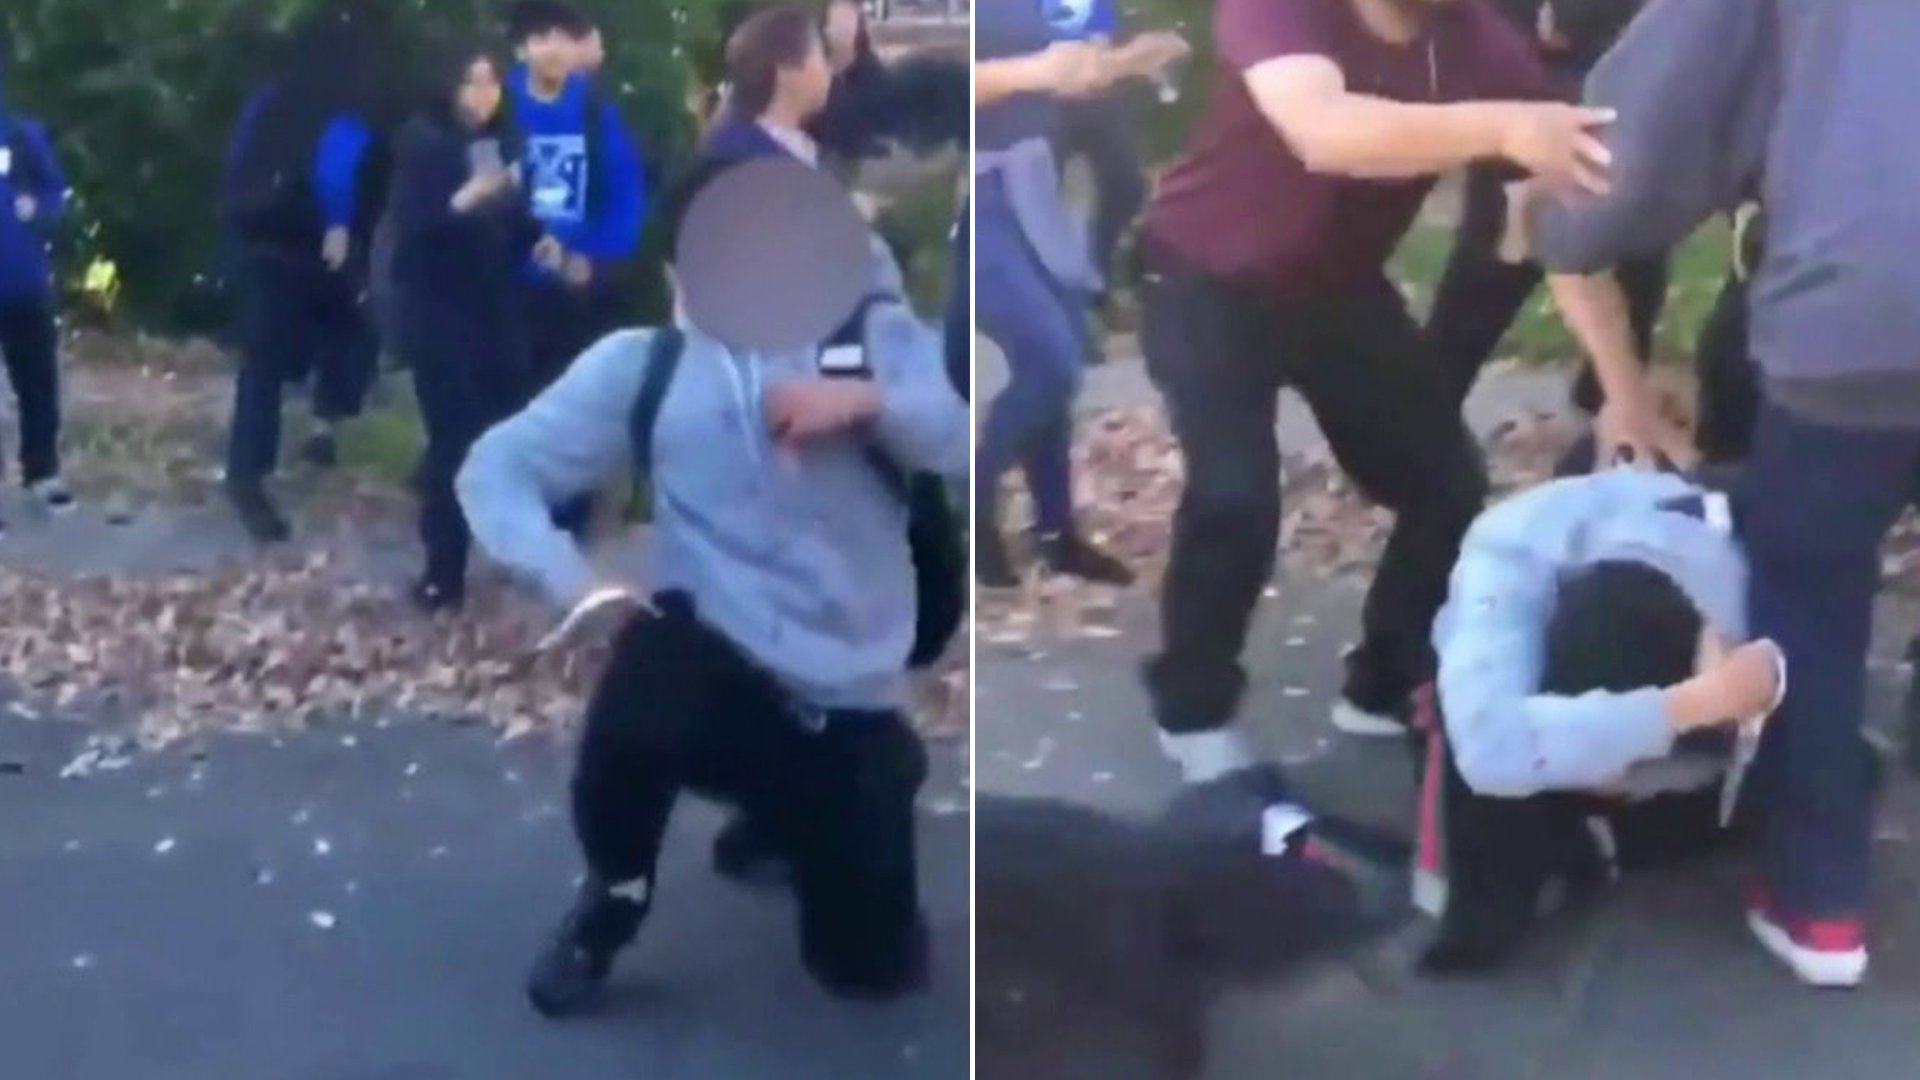 Cellphone video shows a person holding a sharp objectduring a brawl outside Mulholland Middle Schoolin Lake Balboa on Jan. 24, 2020.